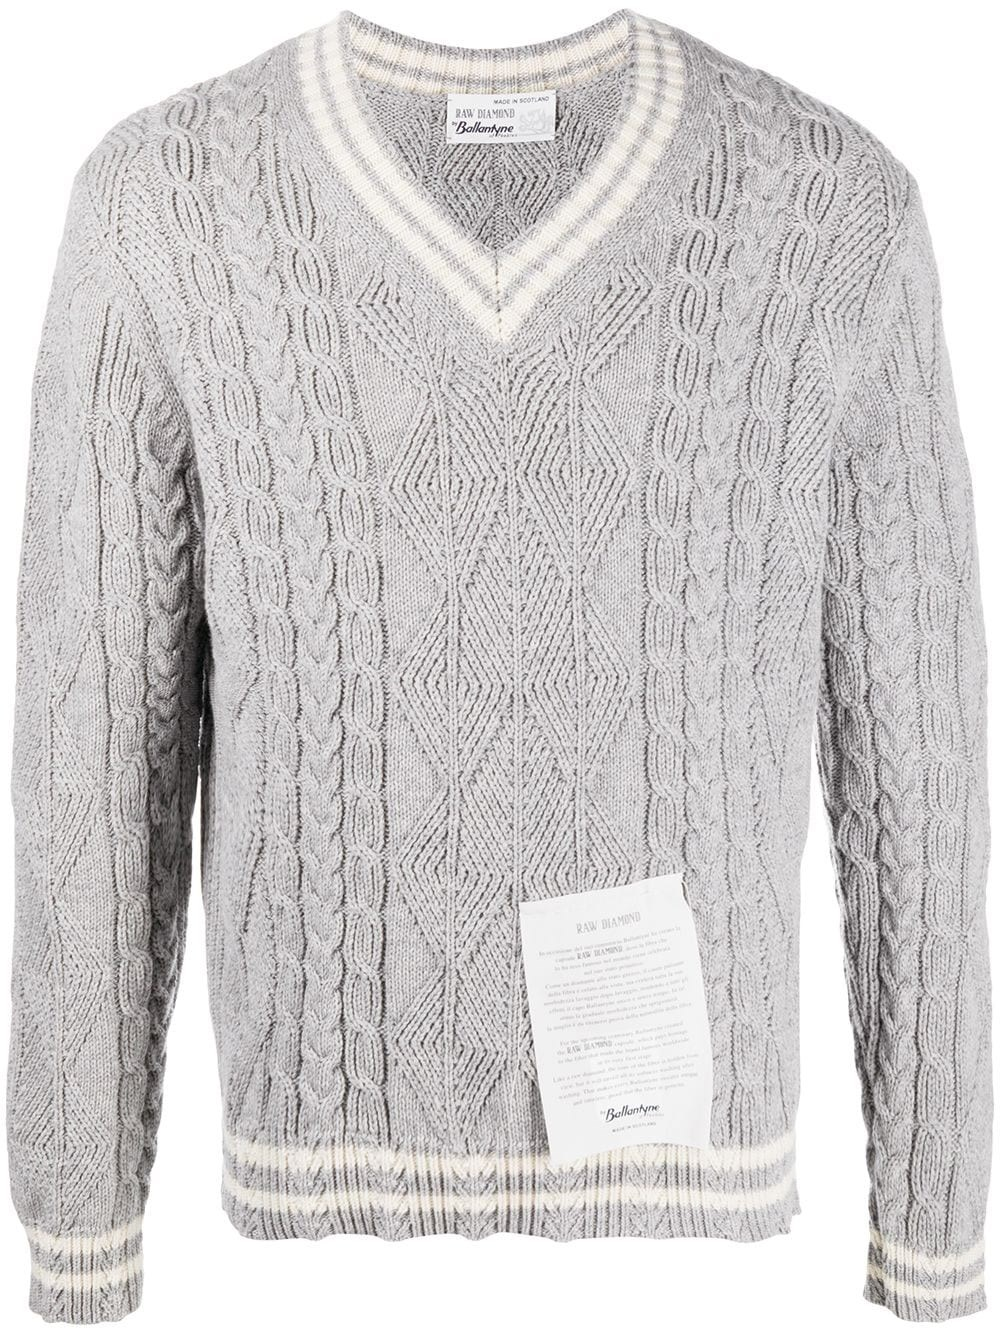 RAW DIAMOND BY BALLANTYNE Tag Cable-Knit V-Neck Jumper